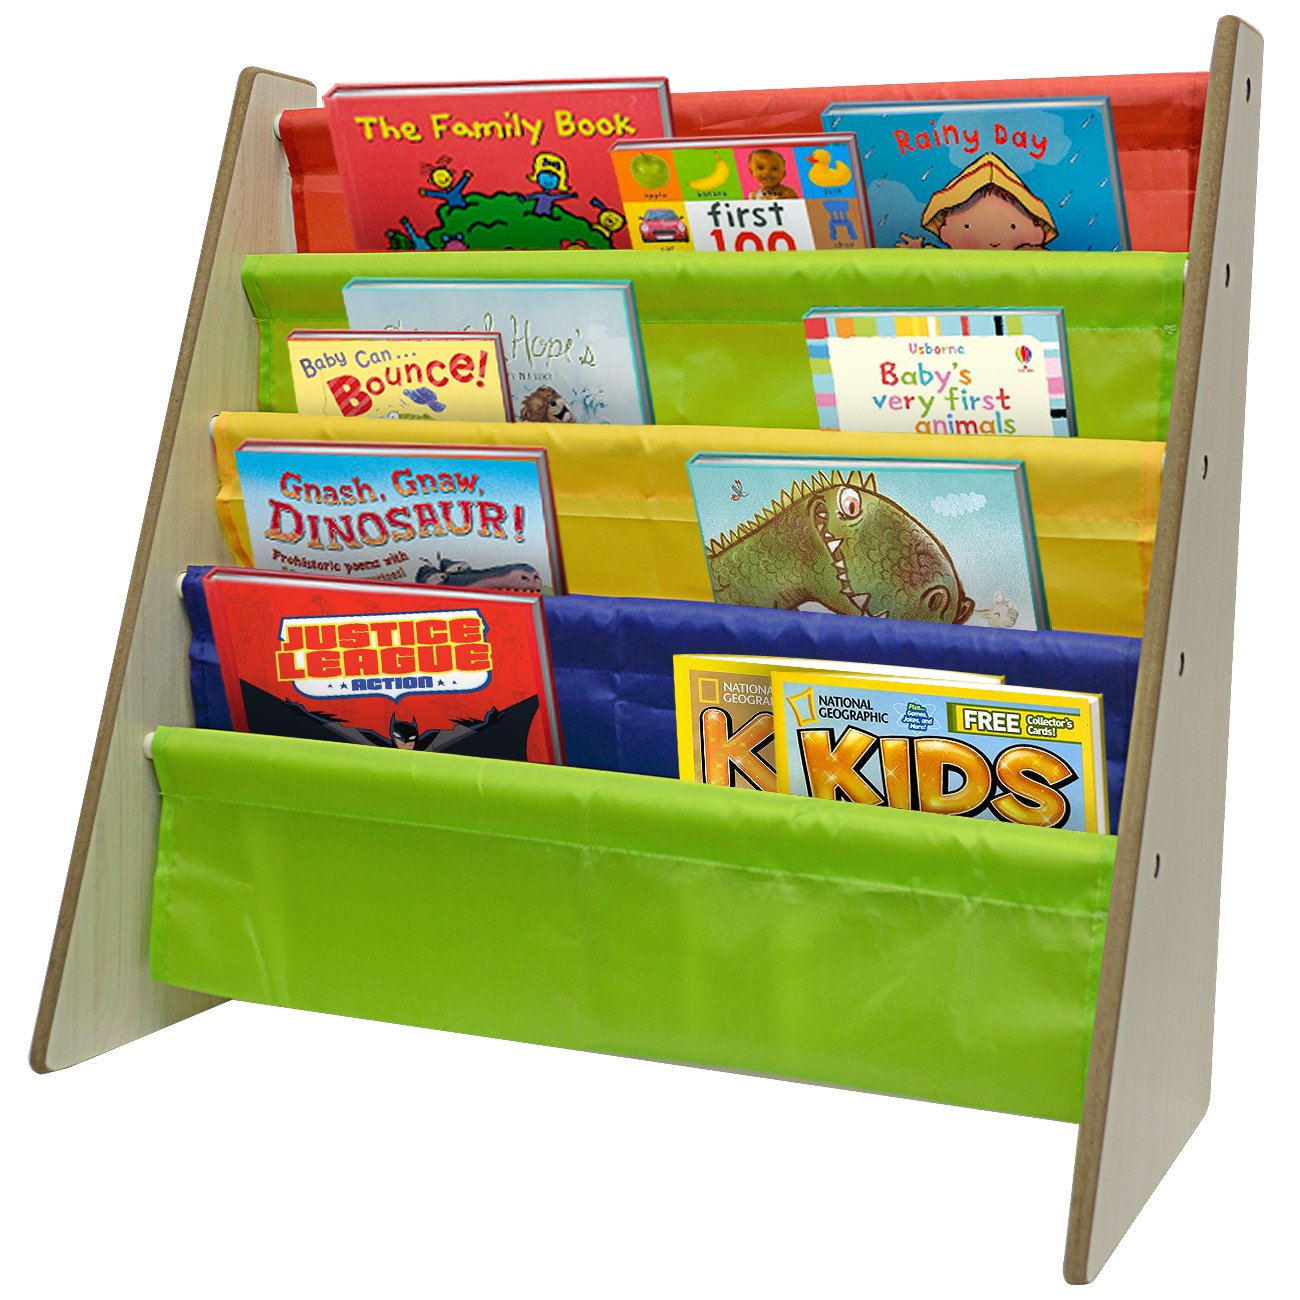 amazoncom sorbus kids bookshelf  bright primary color pockets  - amazoncom sorbus kids bookshelf  bright primary color pockets toddlerbookcase features sling pockets for books  toysgreat for bedroomplayroom